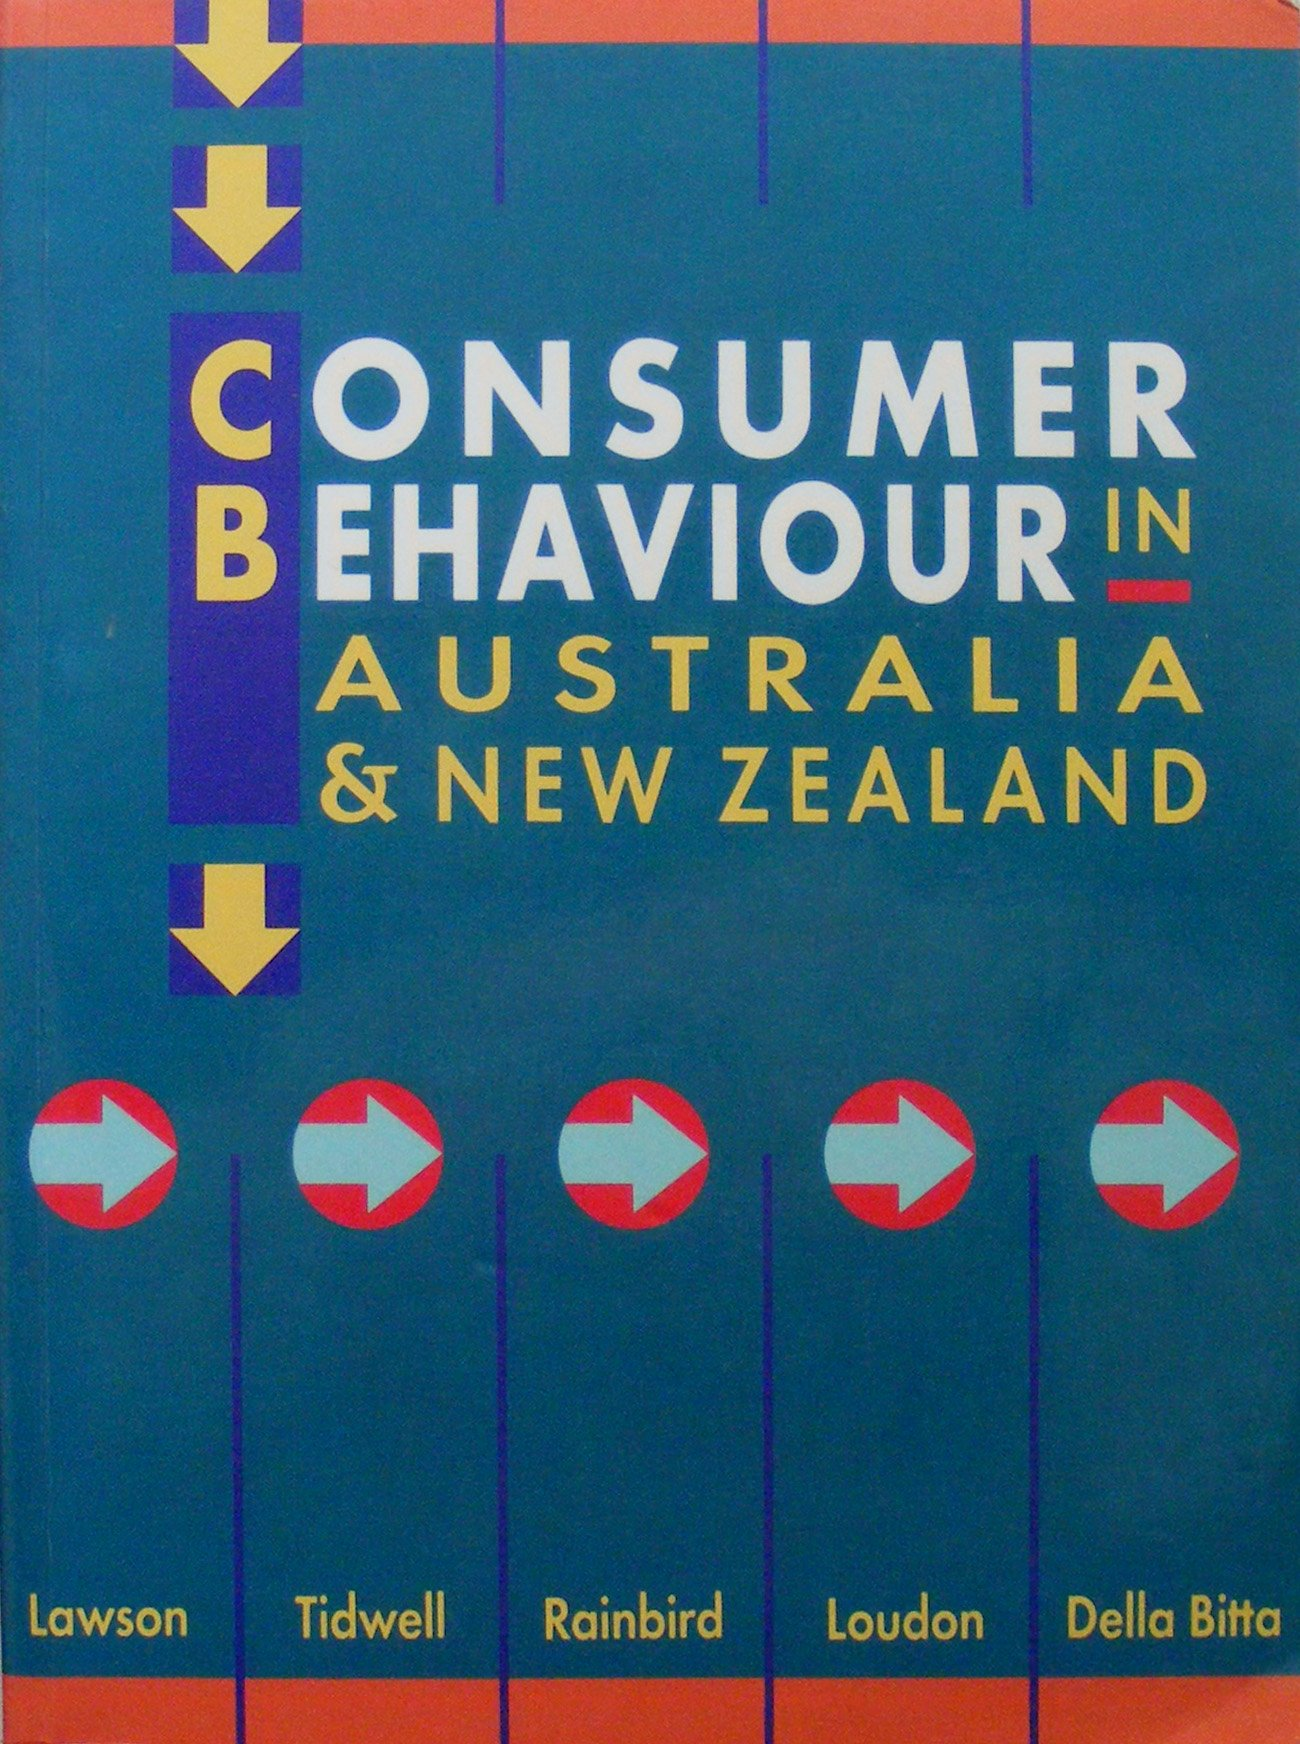 Consumer Behaviour in Australasia